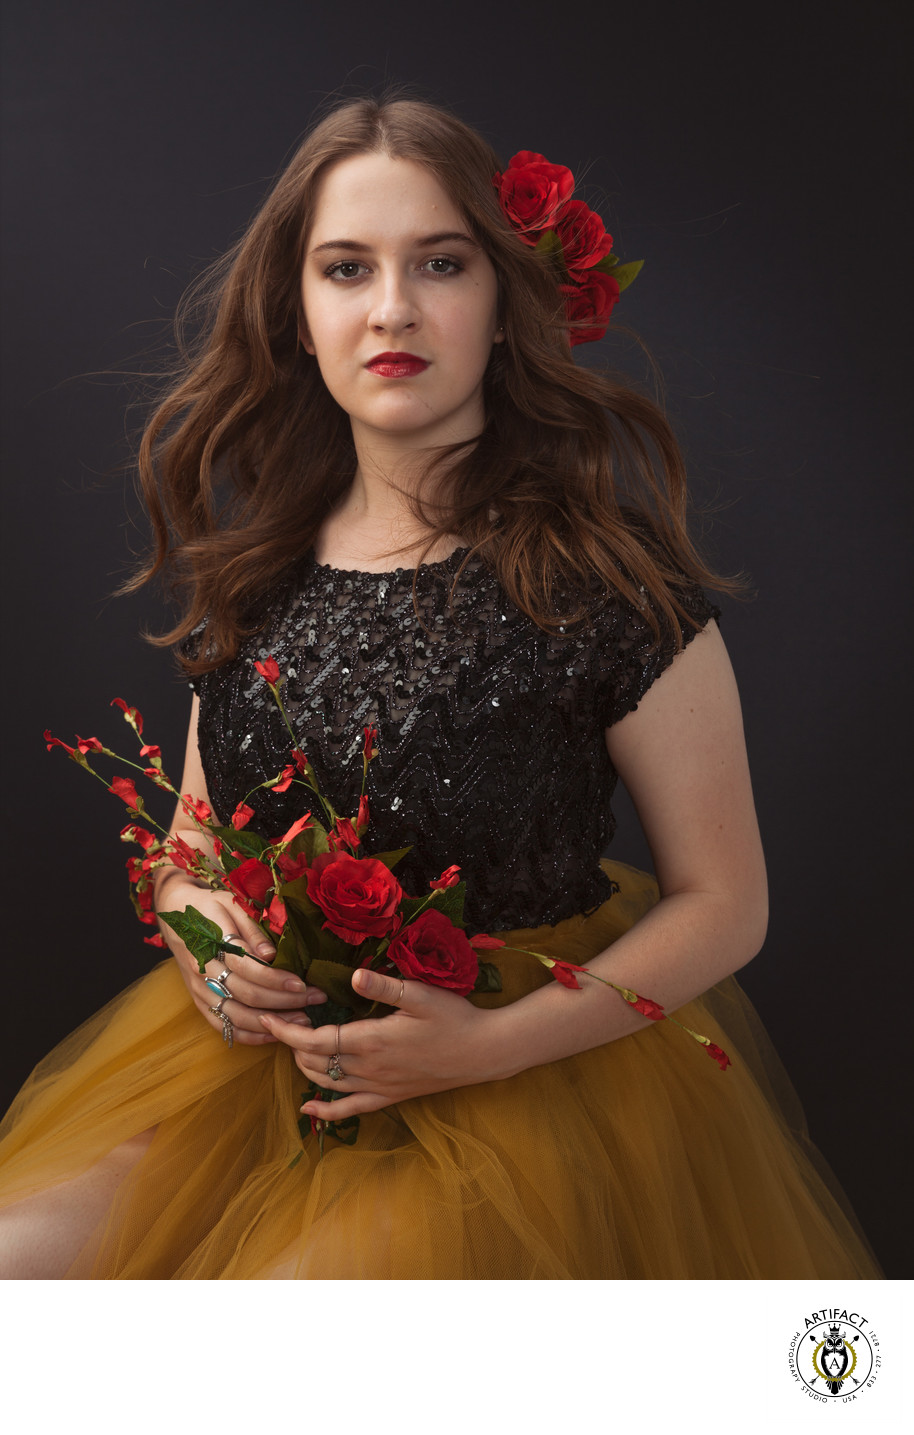 Glamour Portrait with Red Roses | Lily